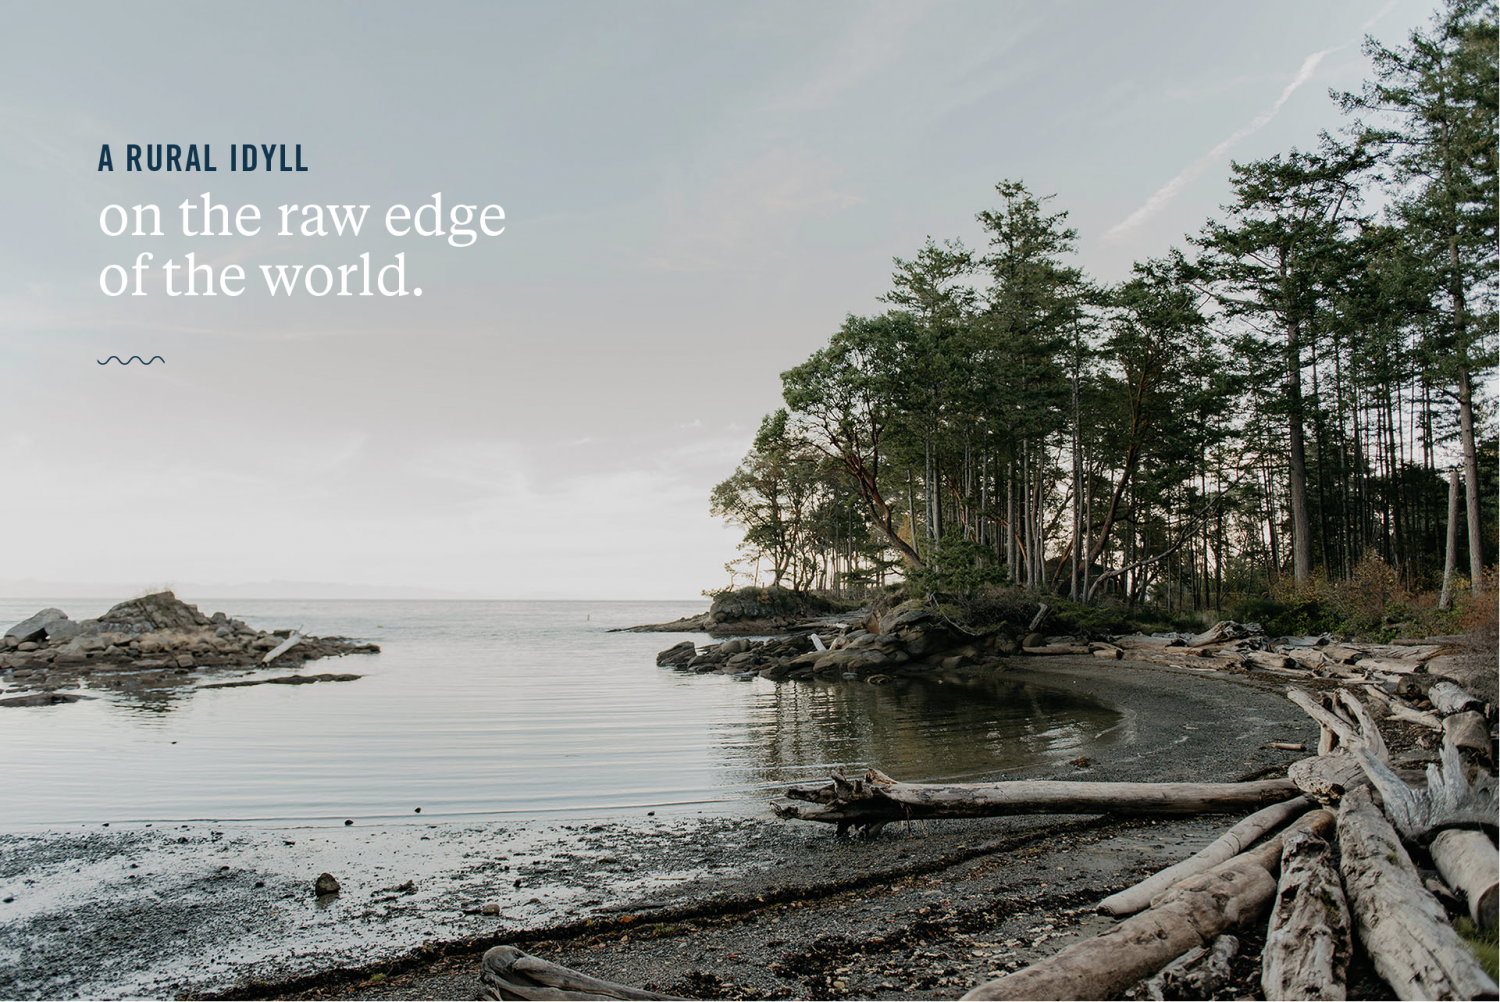 """""""A rural idyll on the raw edge of the world"""" with image of the Southern Gulf Islands coast."""